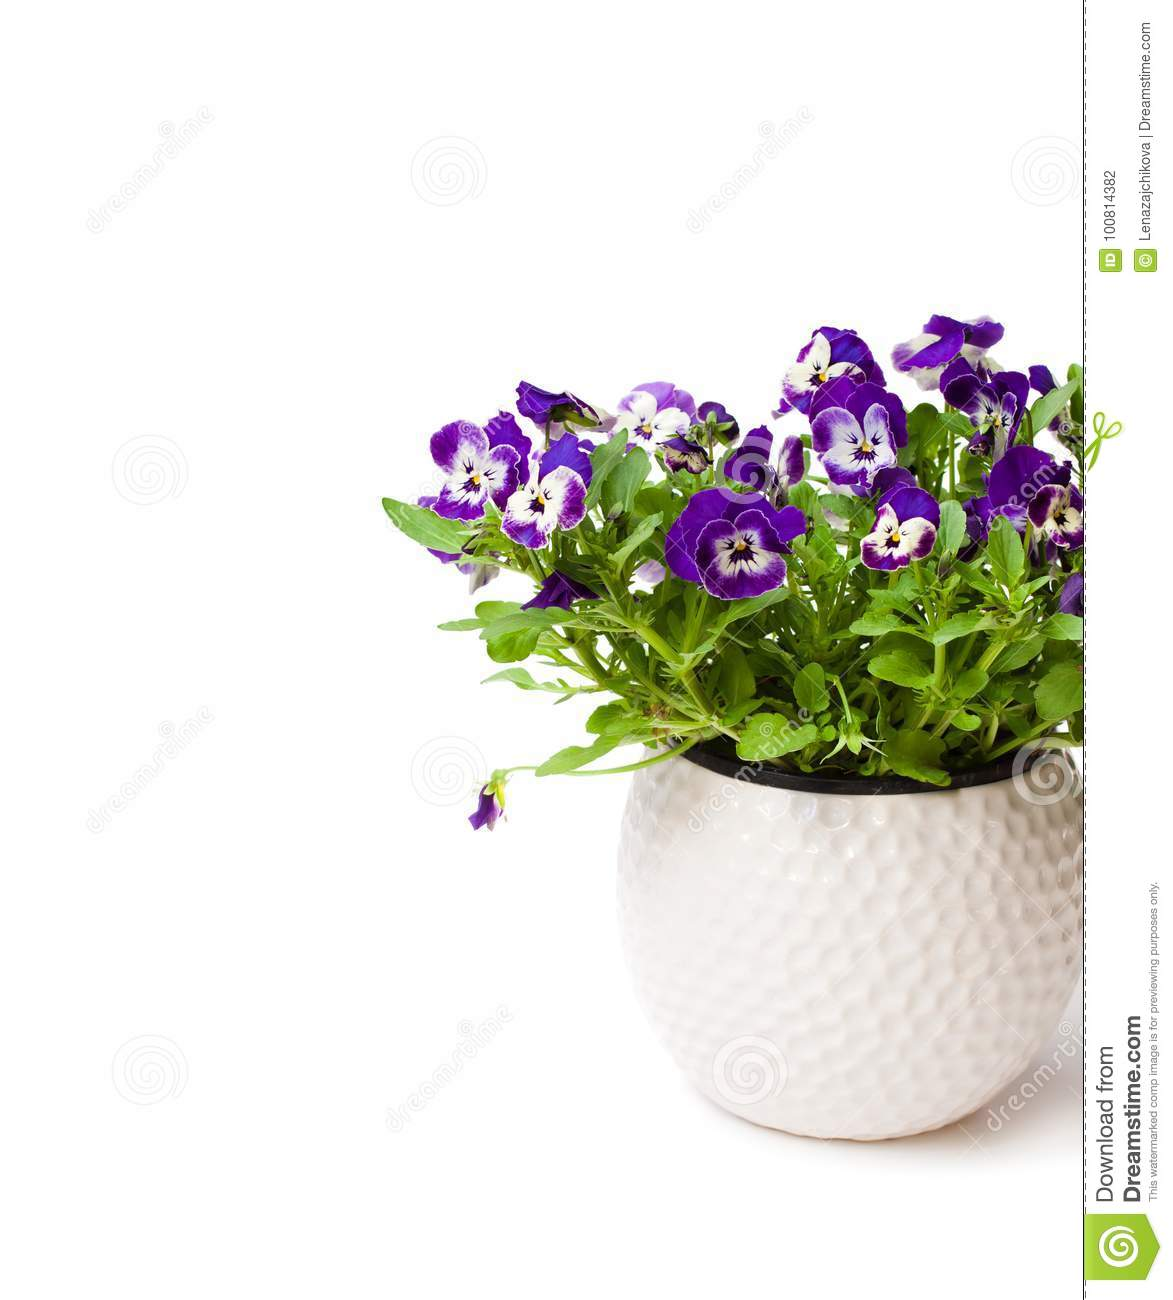 Colorful pansy flower plant in white pot isolated